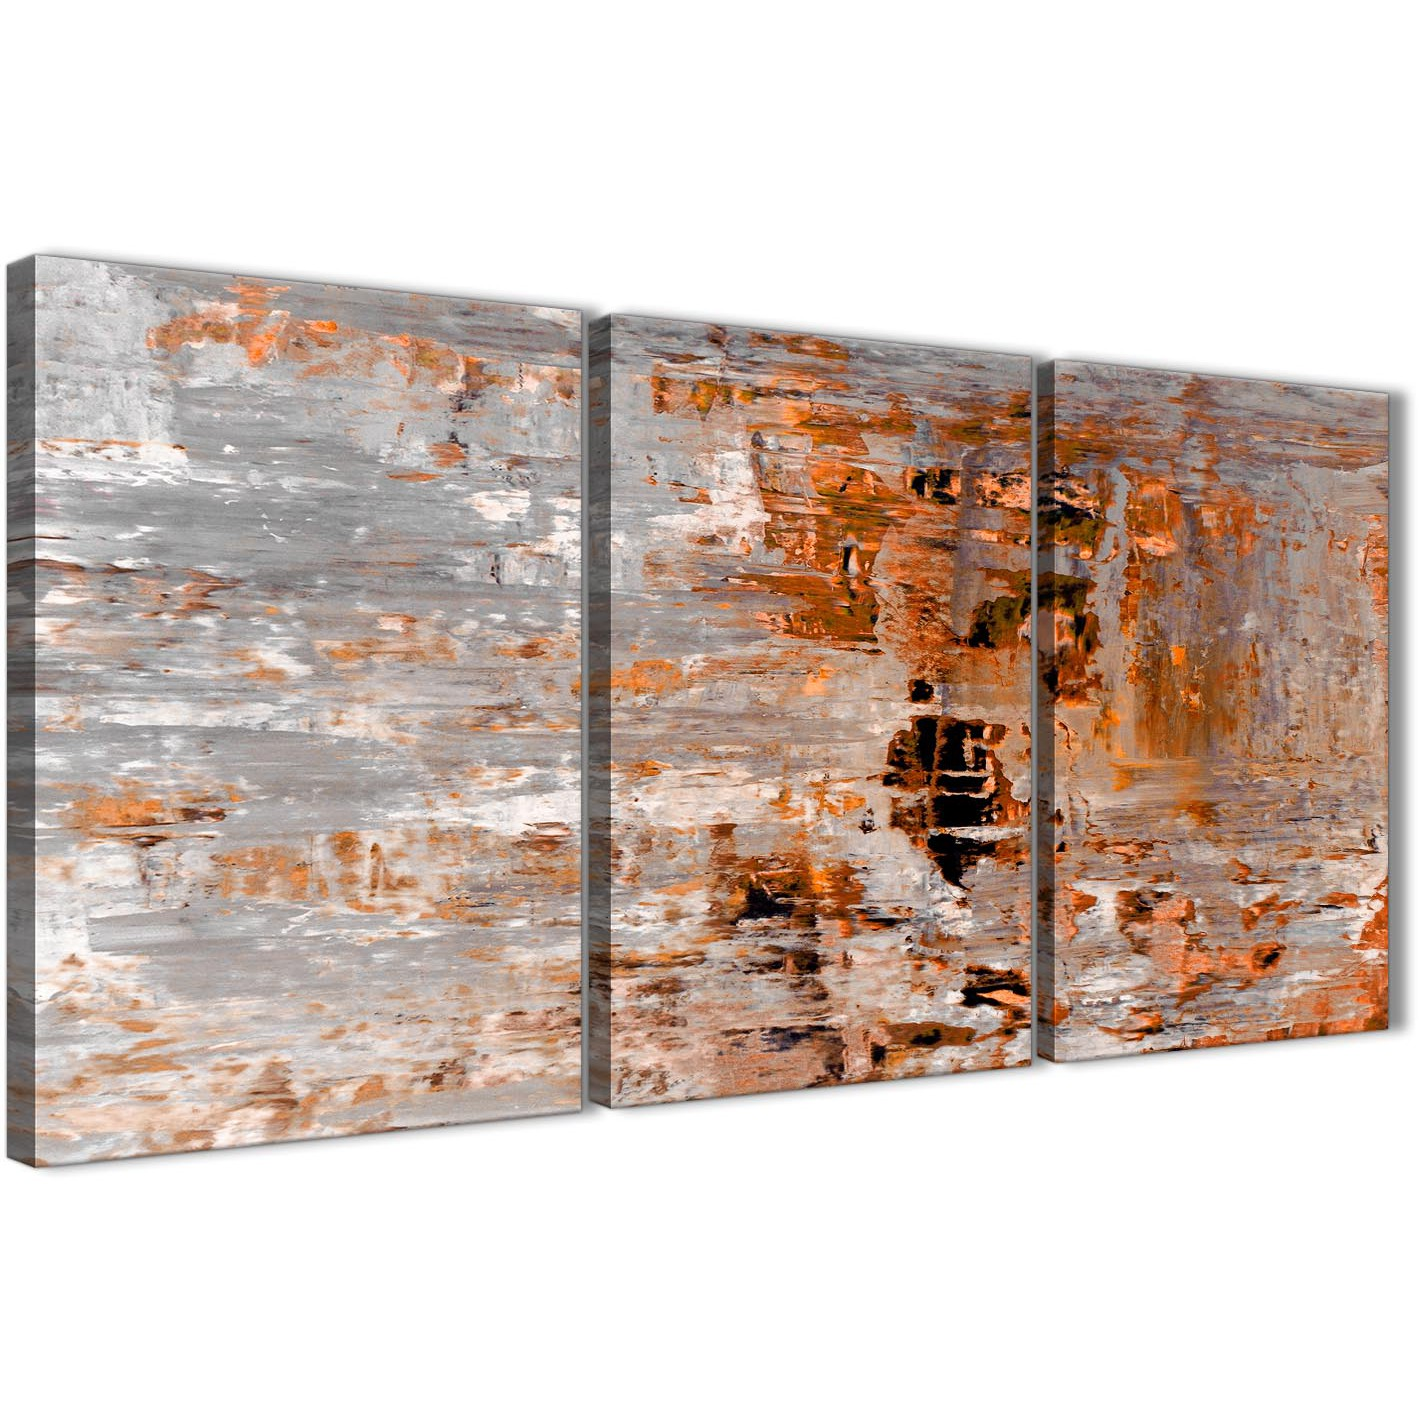 Next Set Of 3 Panel Burnt Orange Grey Painting Kitchen Canvas Wall Art  Accessories   Abstract Display Gallery Item 1 ...